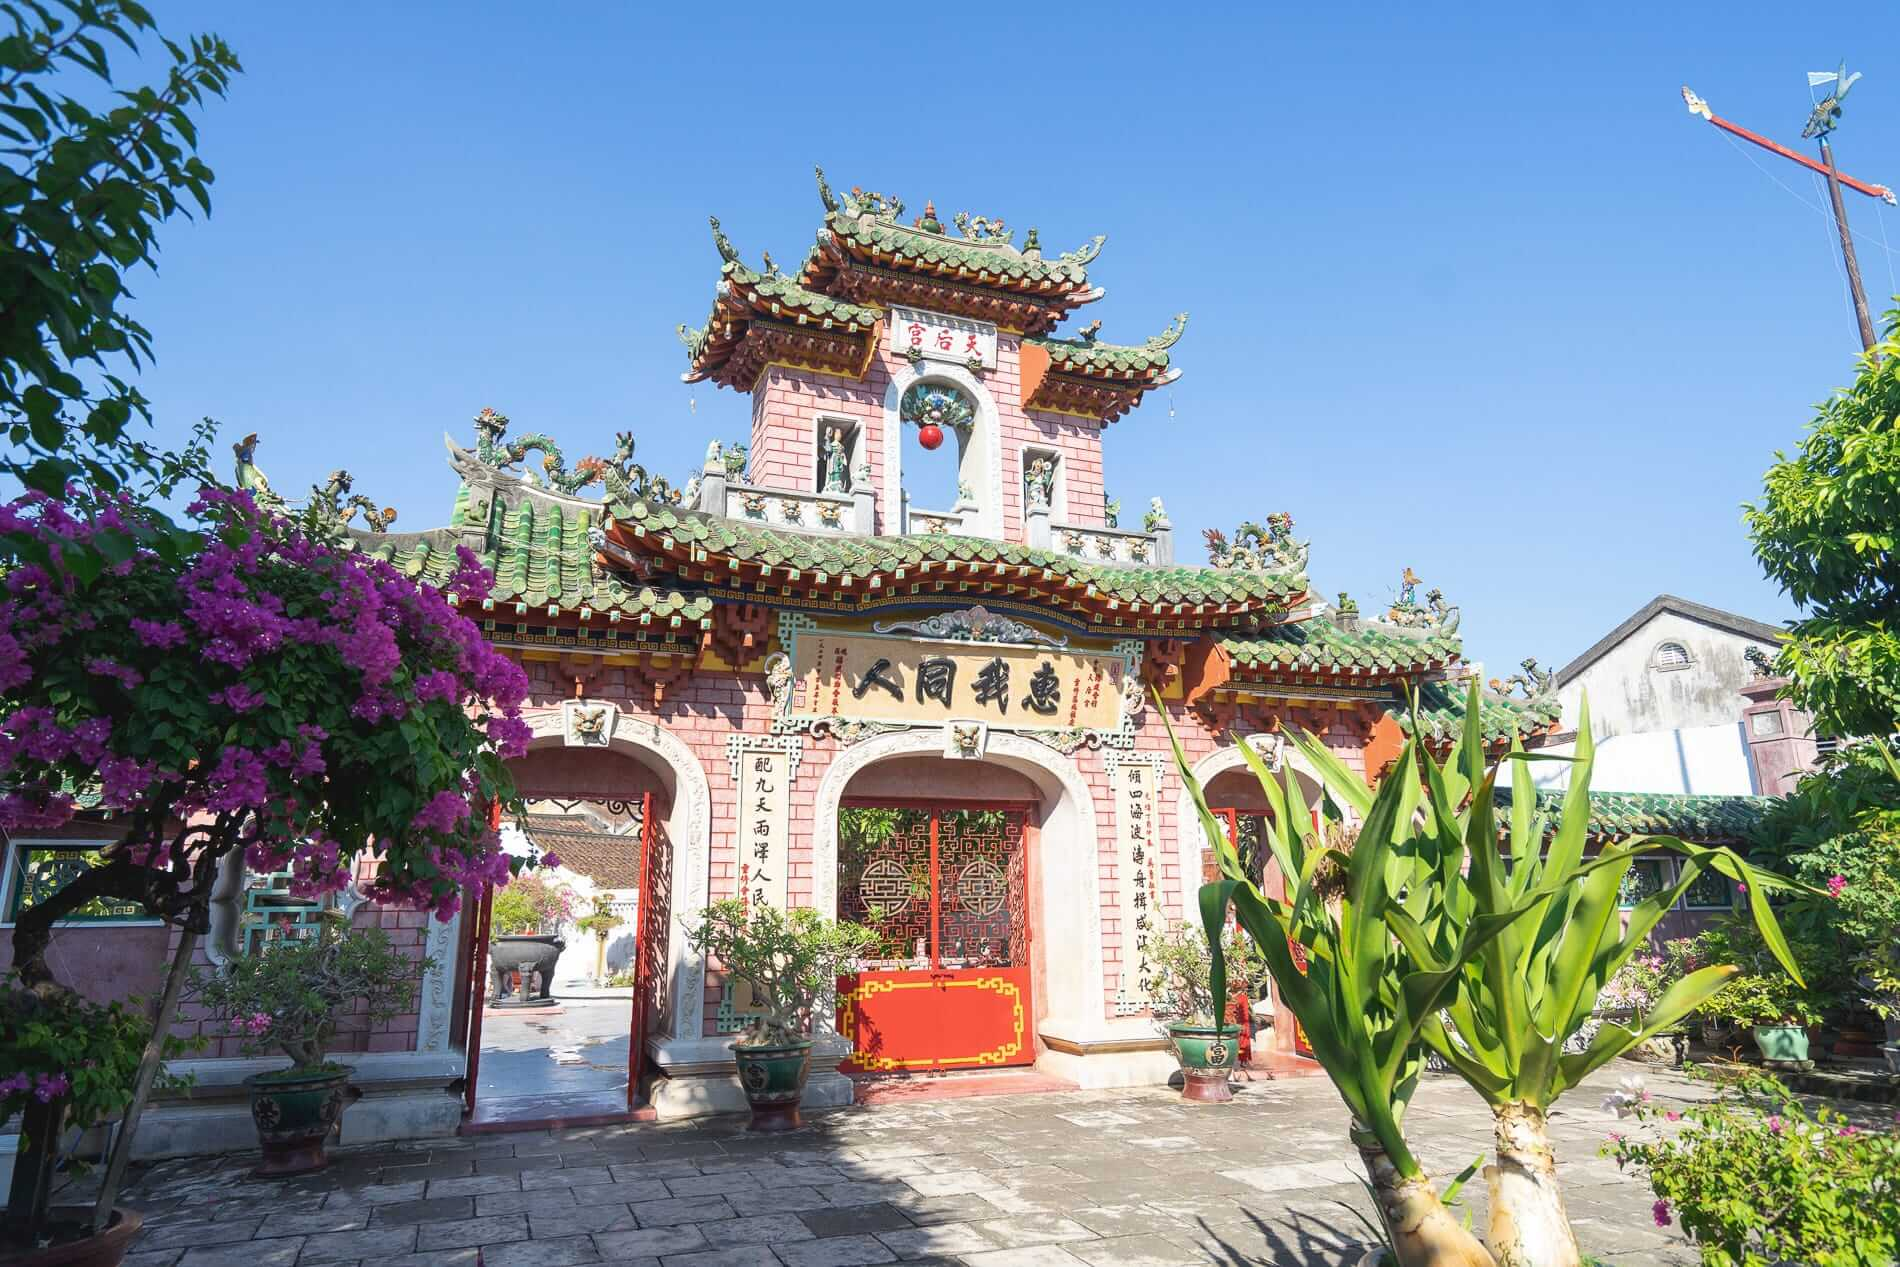 Phuc Kien Assembly Hall - Hoi An Ancient Town